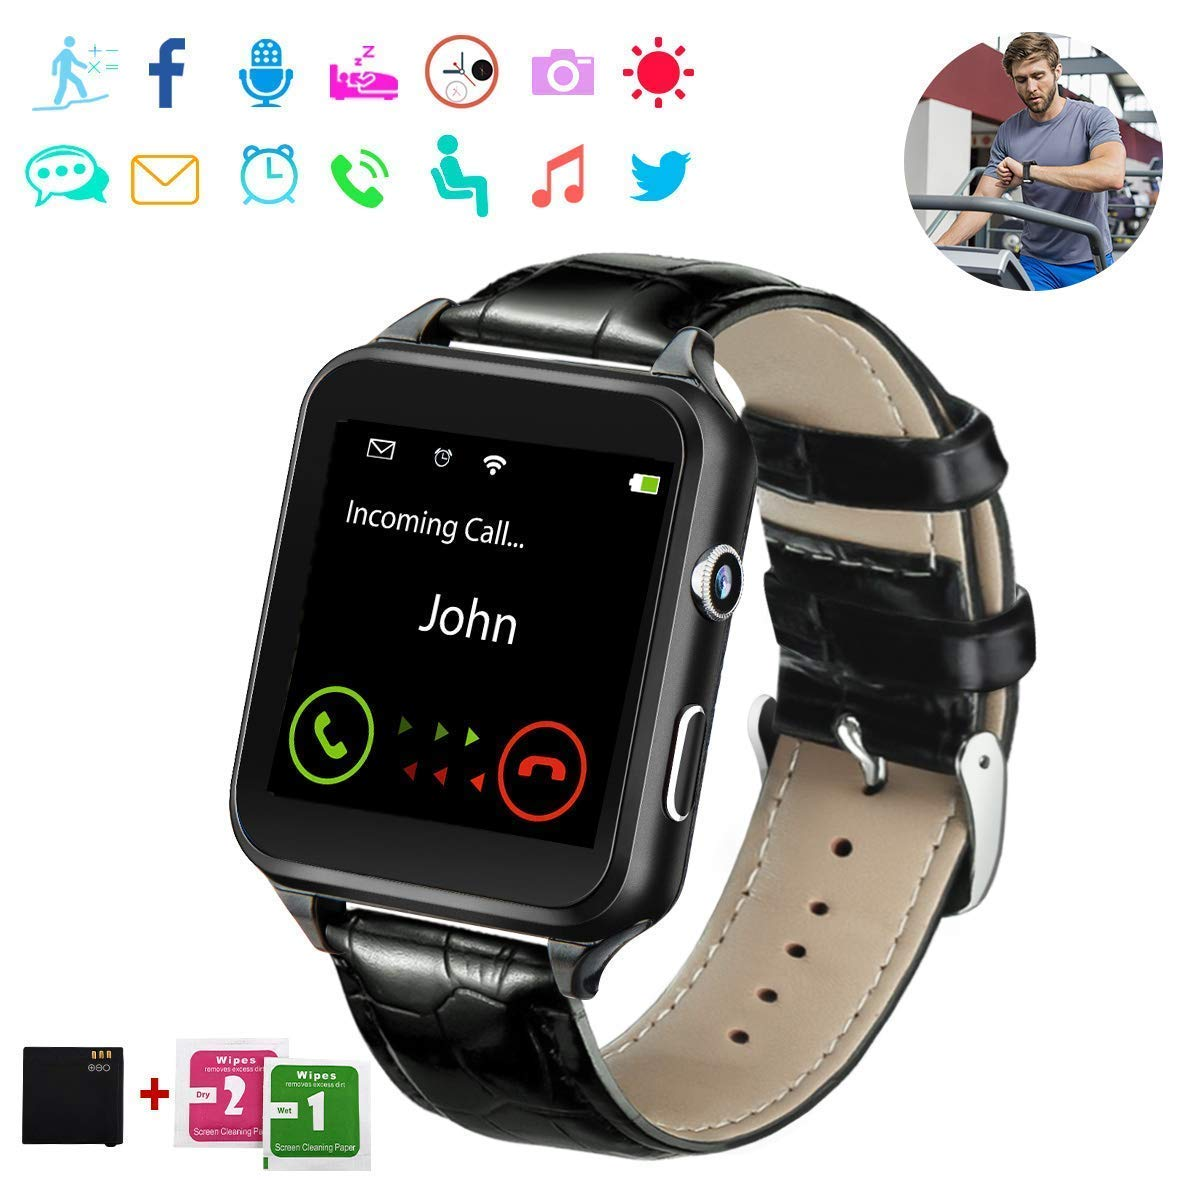 48d5385c9913 Smart Watch,Bluetooth Smartwatch Touchscreen with Camera, Smart Watches  Waterproof Smart Wrist Watch Phone